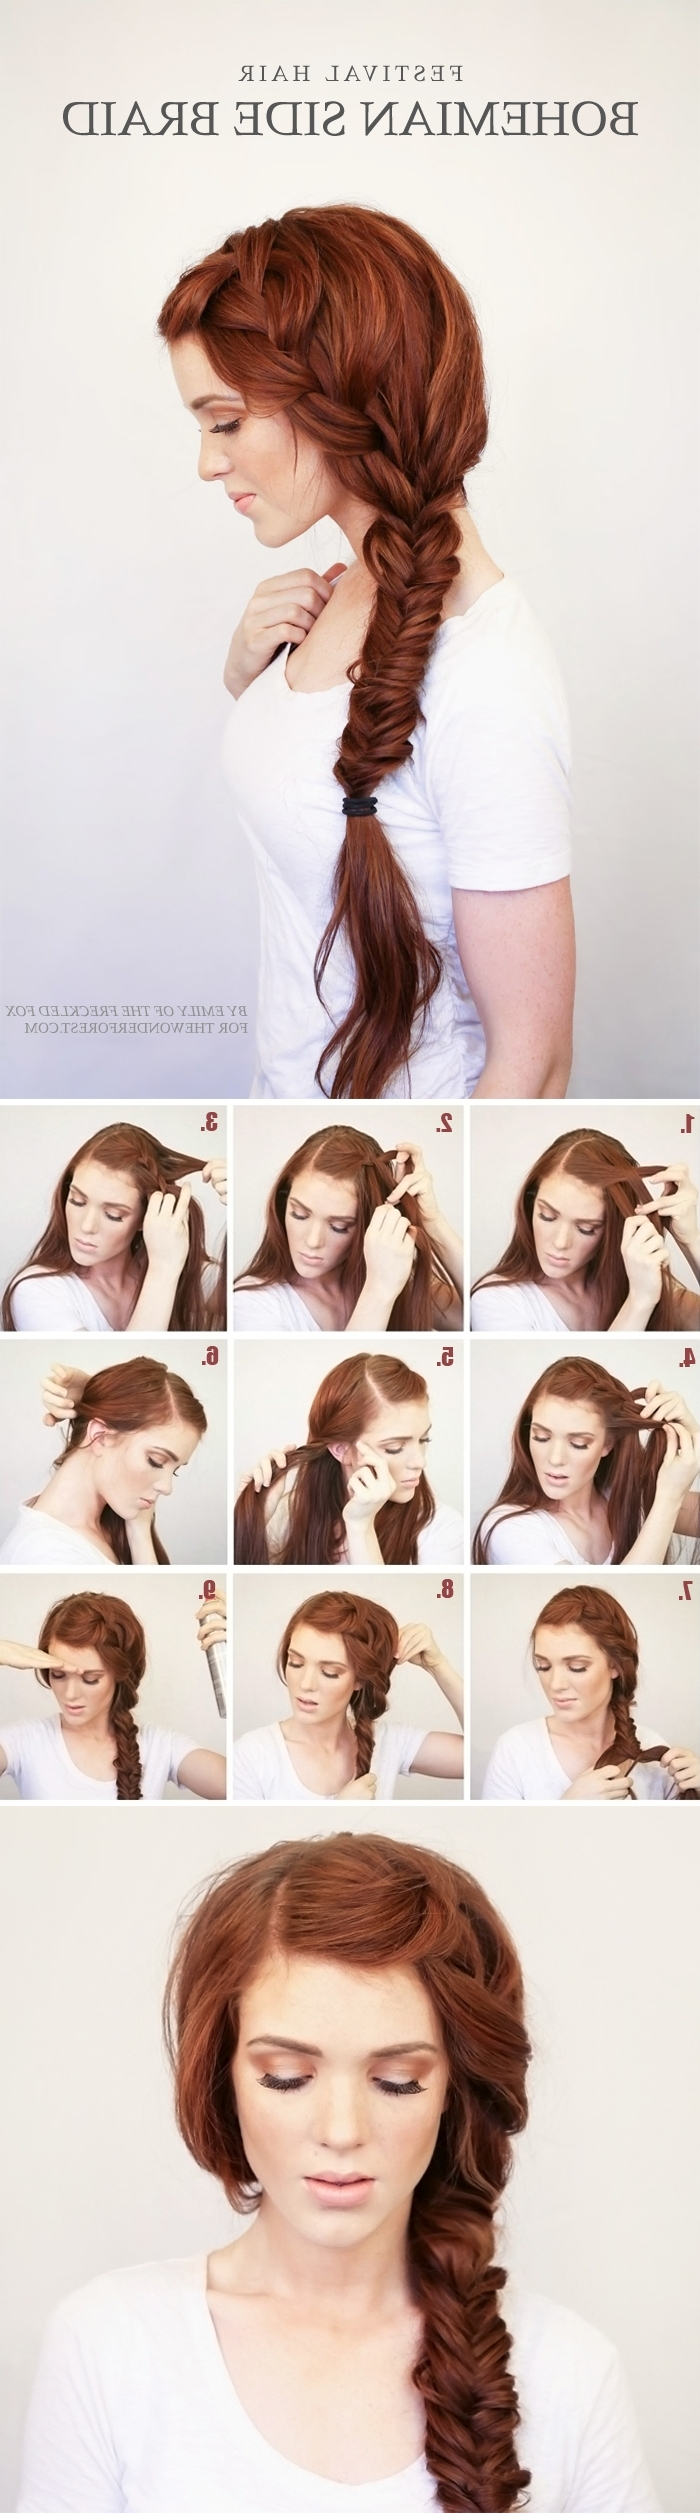 10 Best Diy Wedding Hairstyles With Tutorials | Tulle & Chantilly Intended For Easy Diy Updos For Long Hair (View 1 of 15)